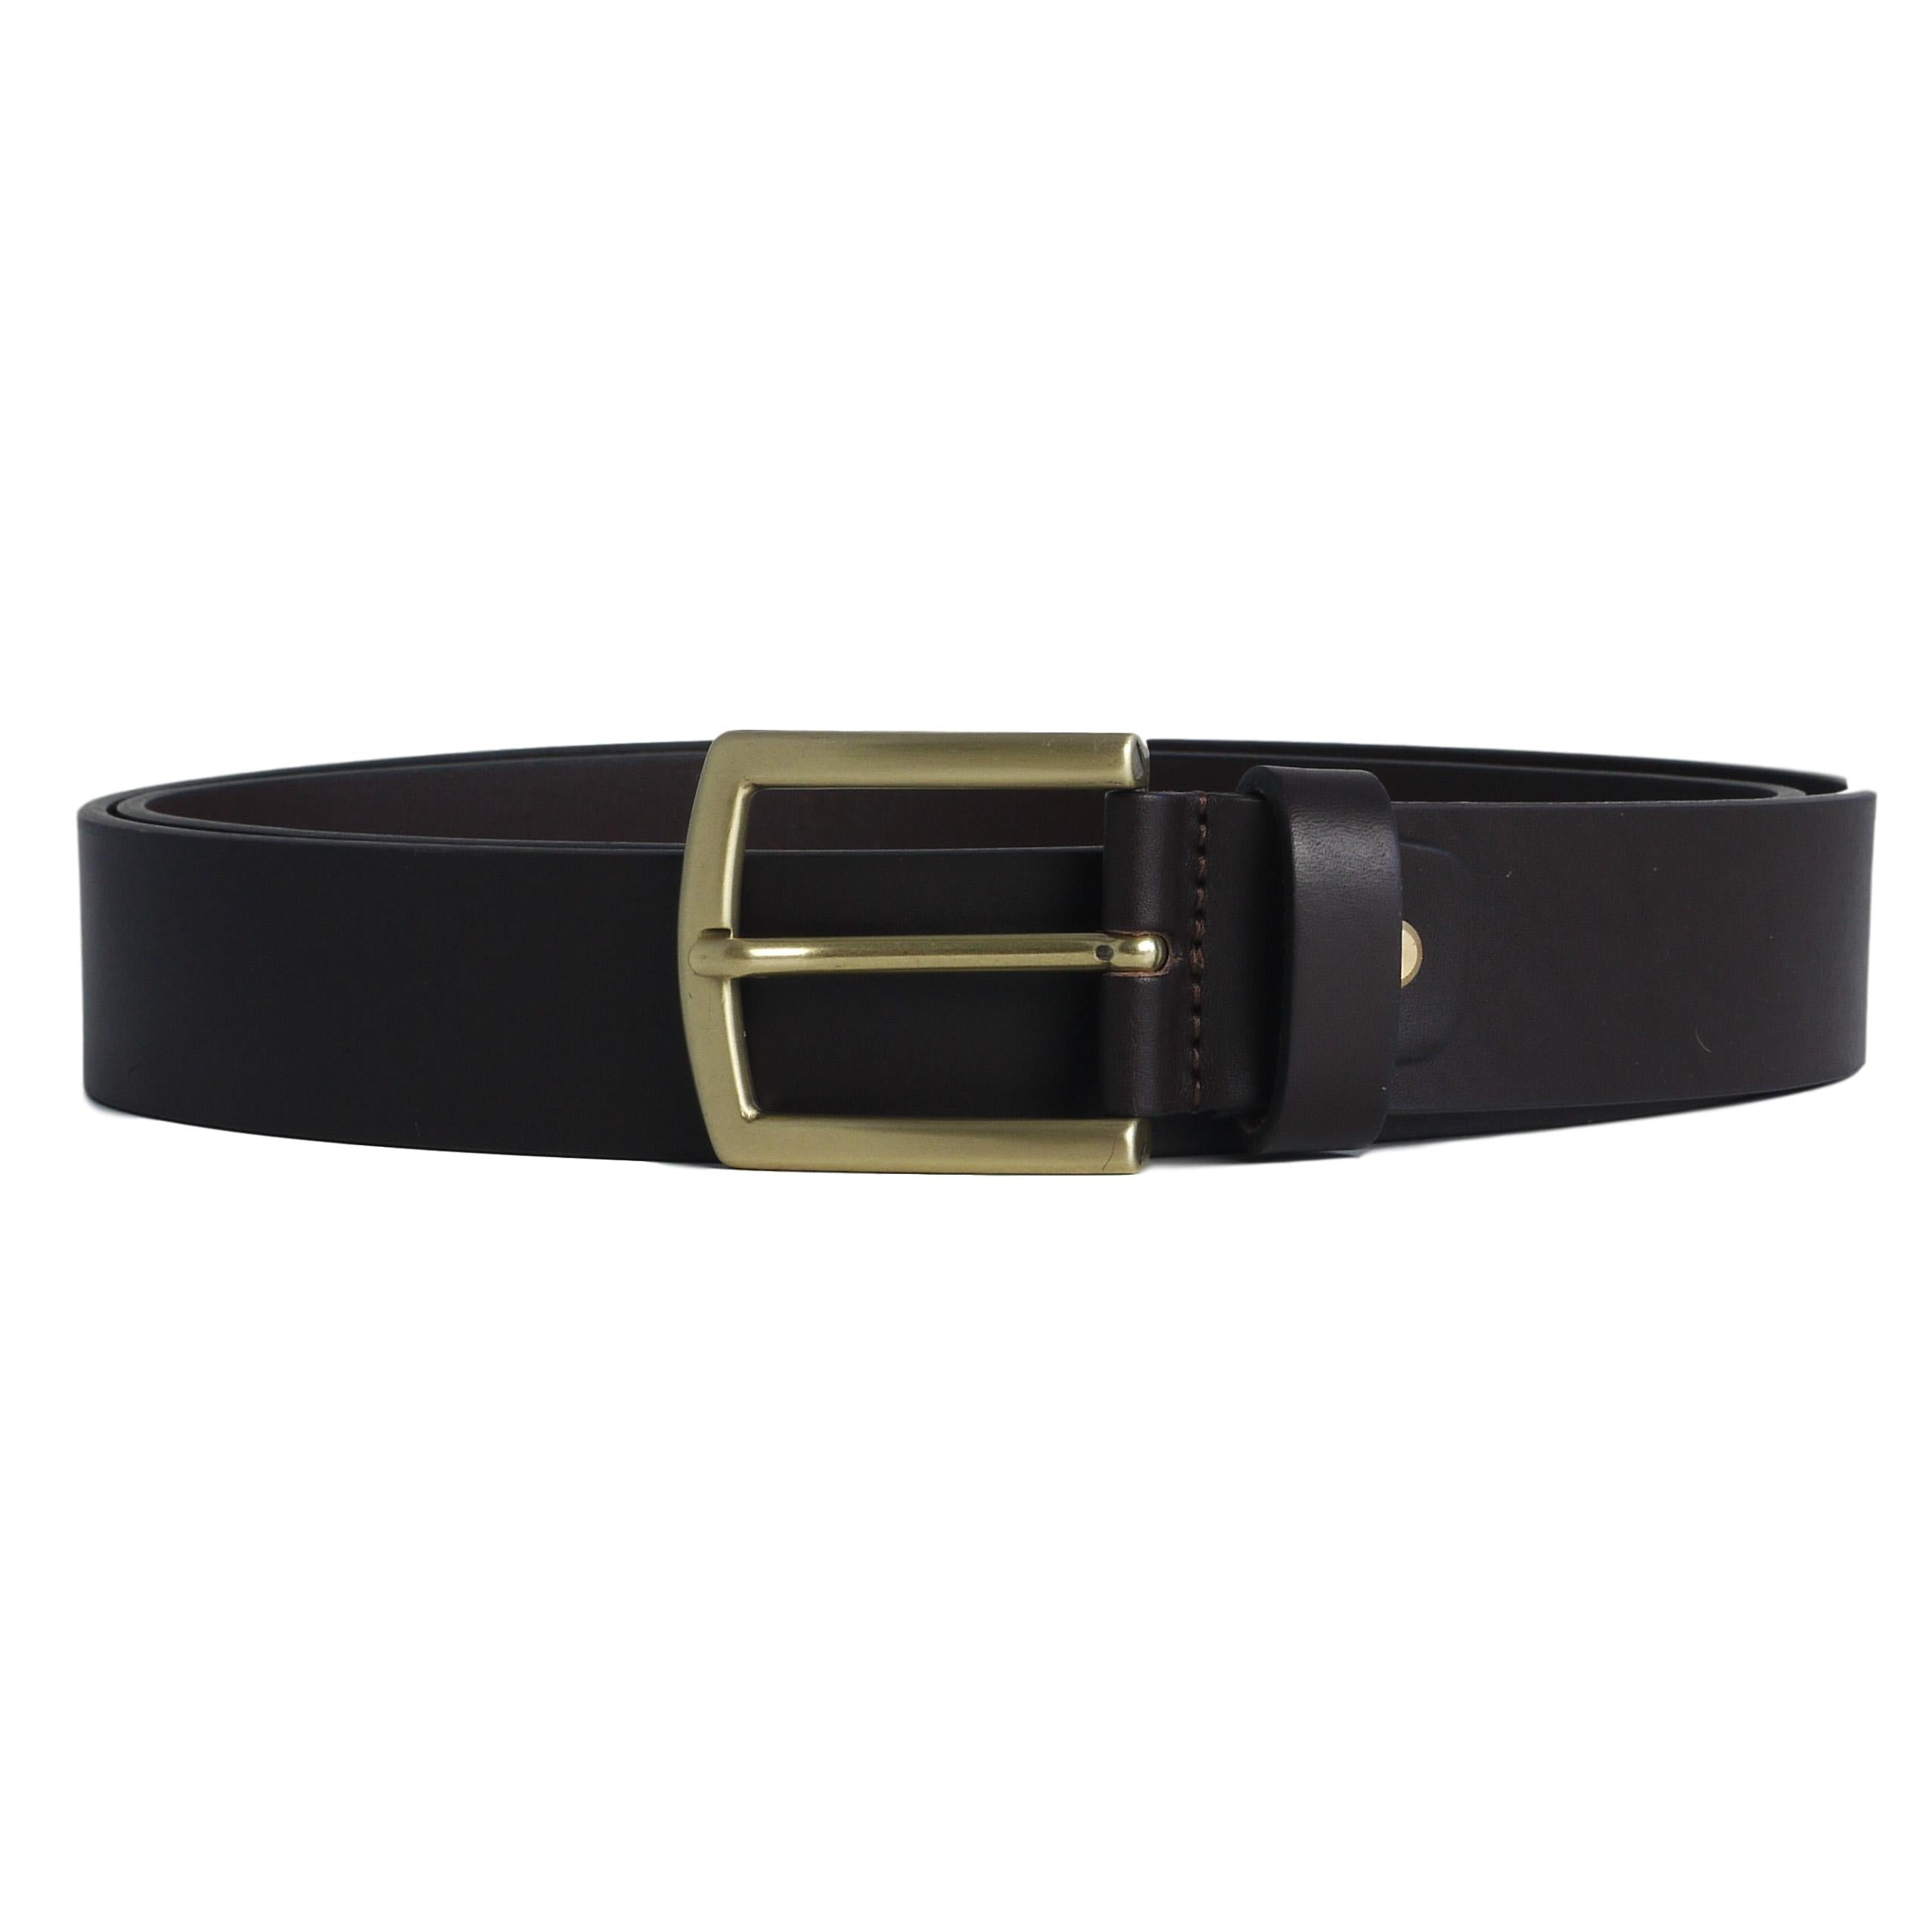 Dark brown thick leather belt